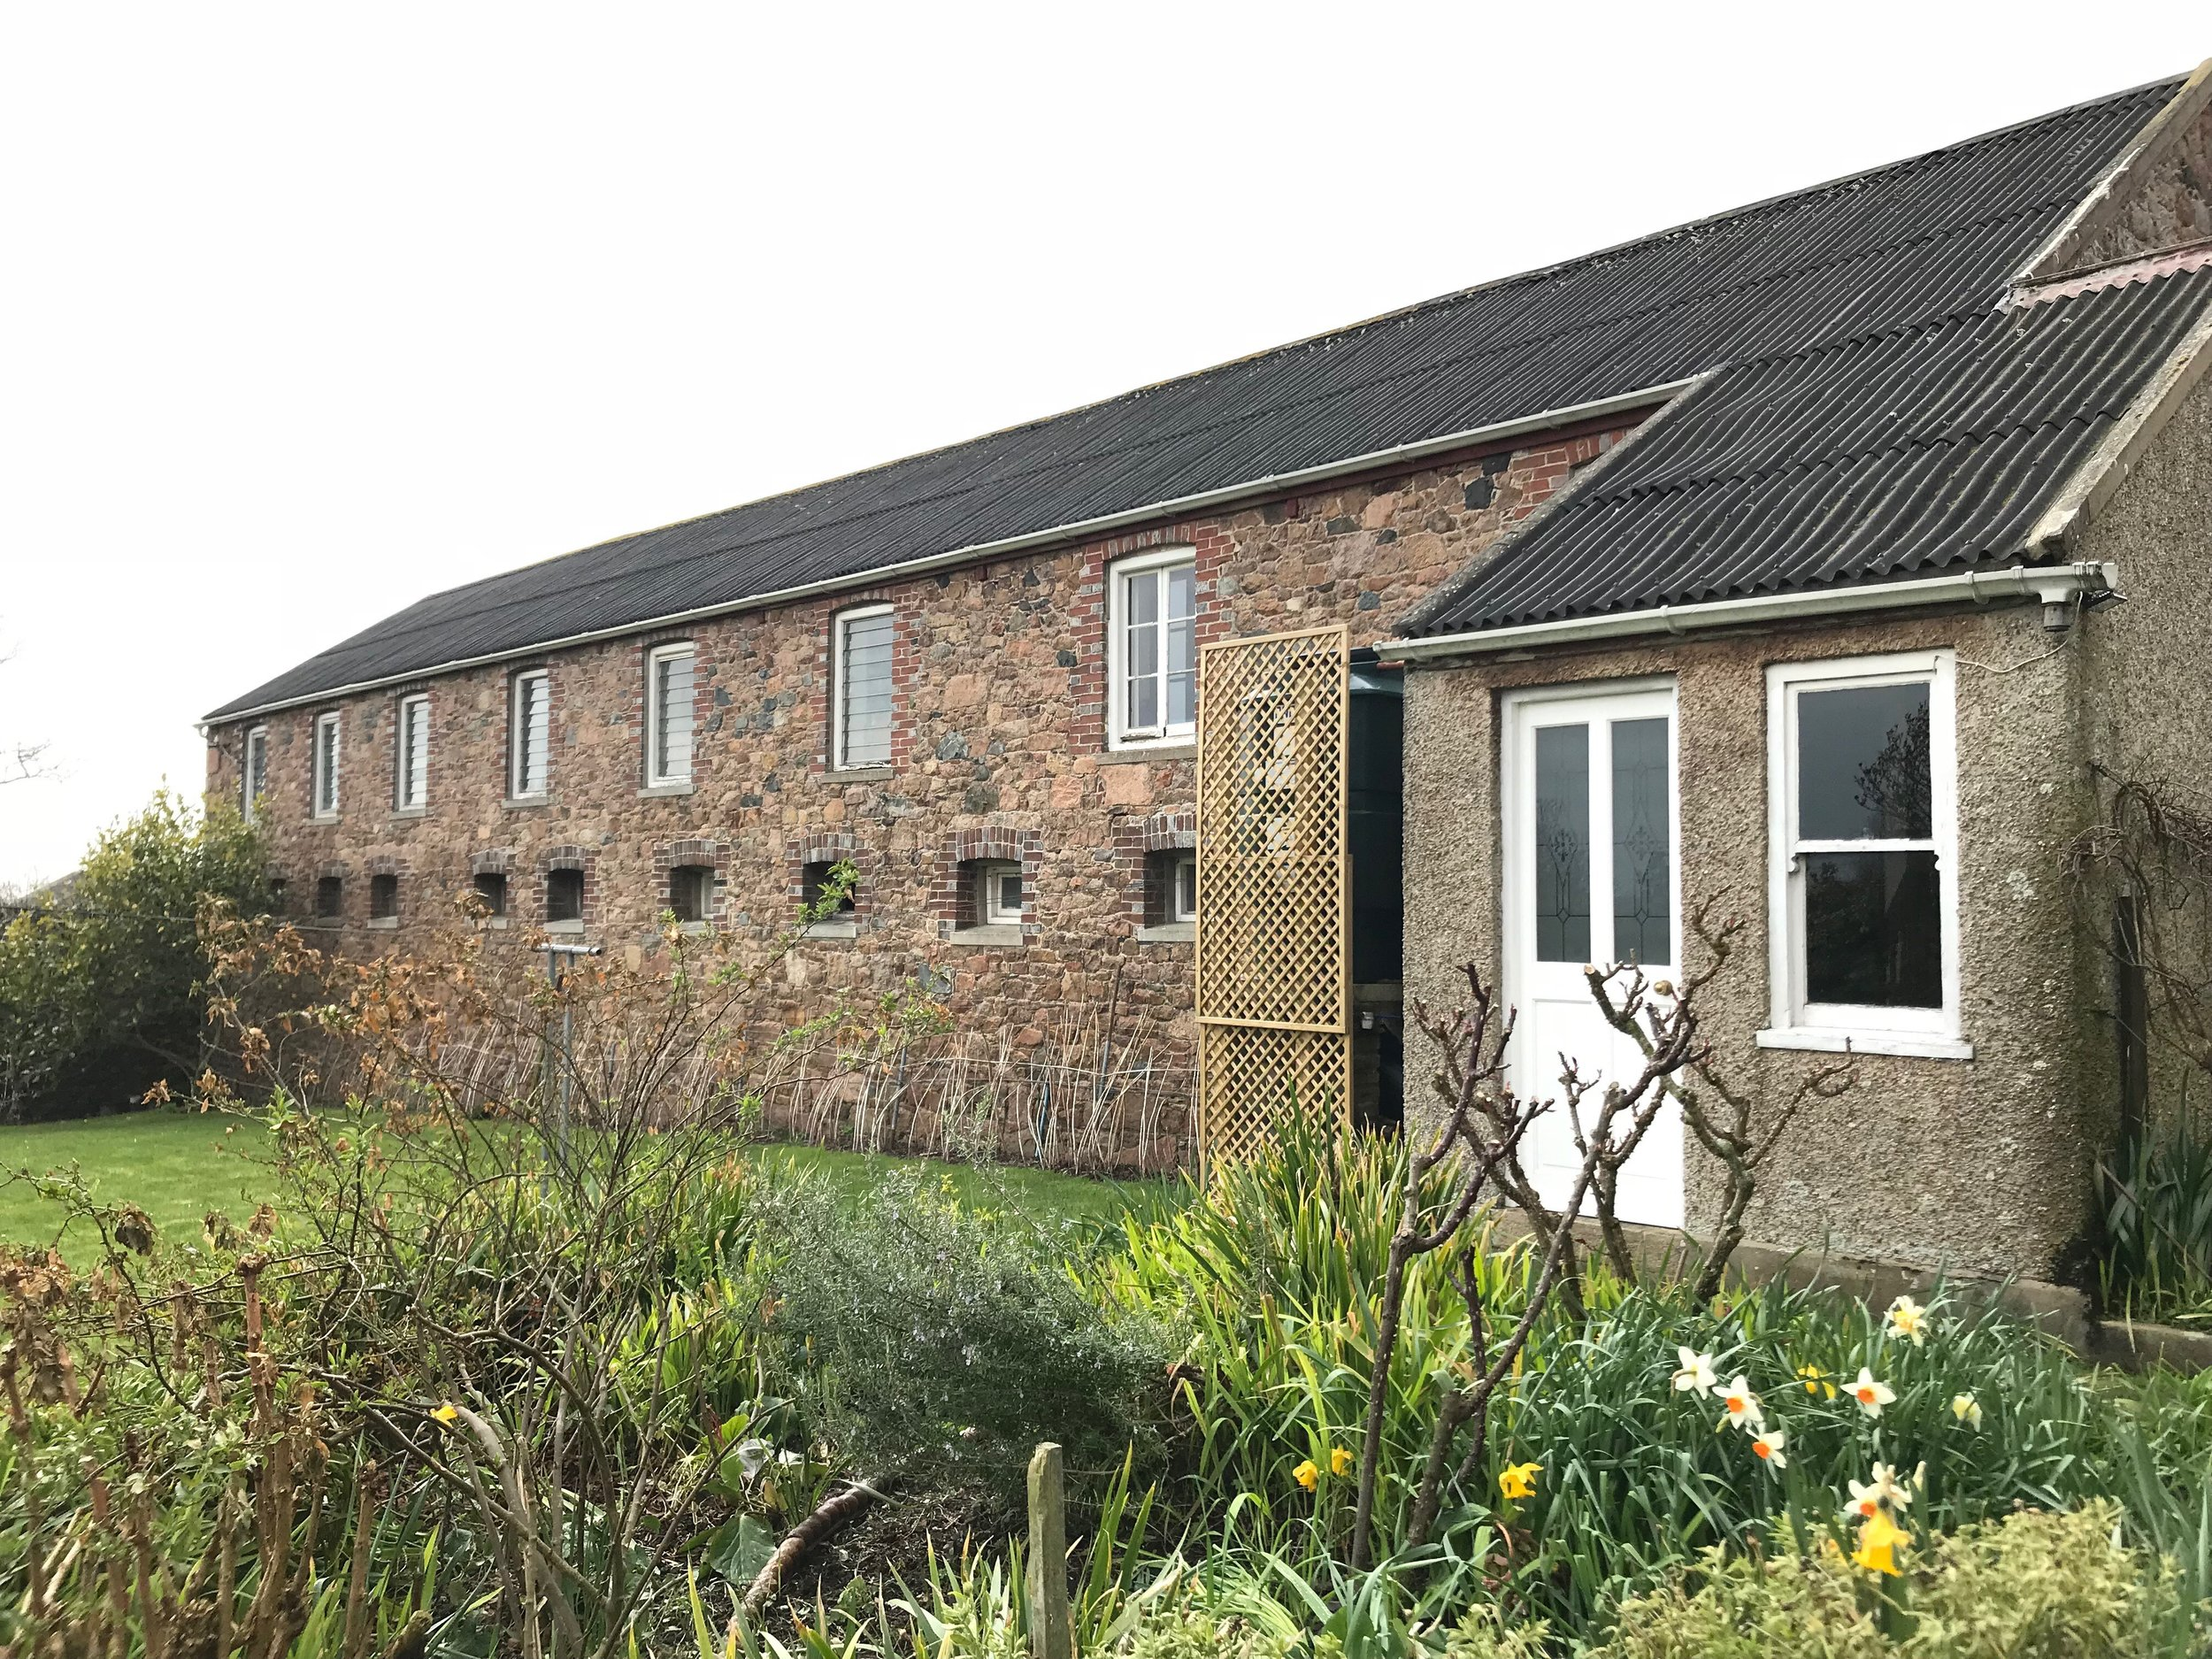 The yoga studio is set within a walled garden above the stables.